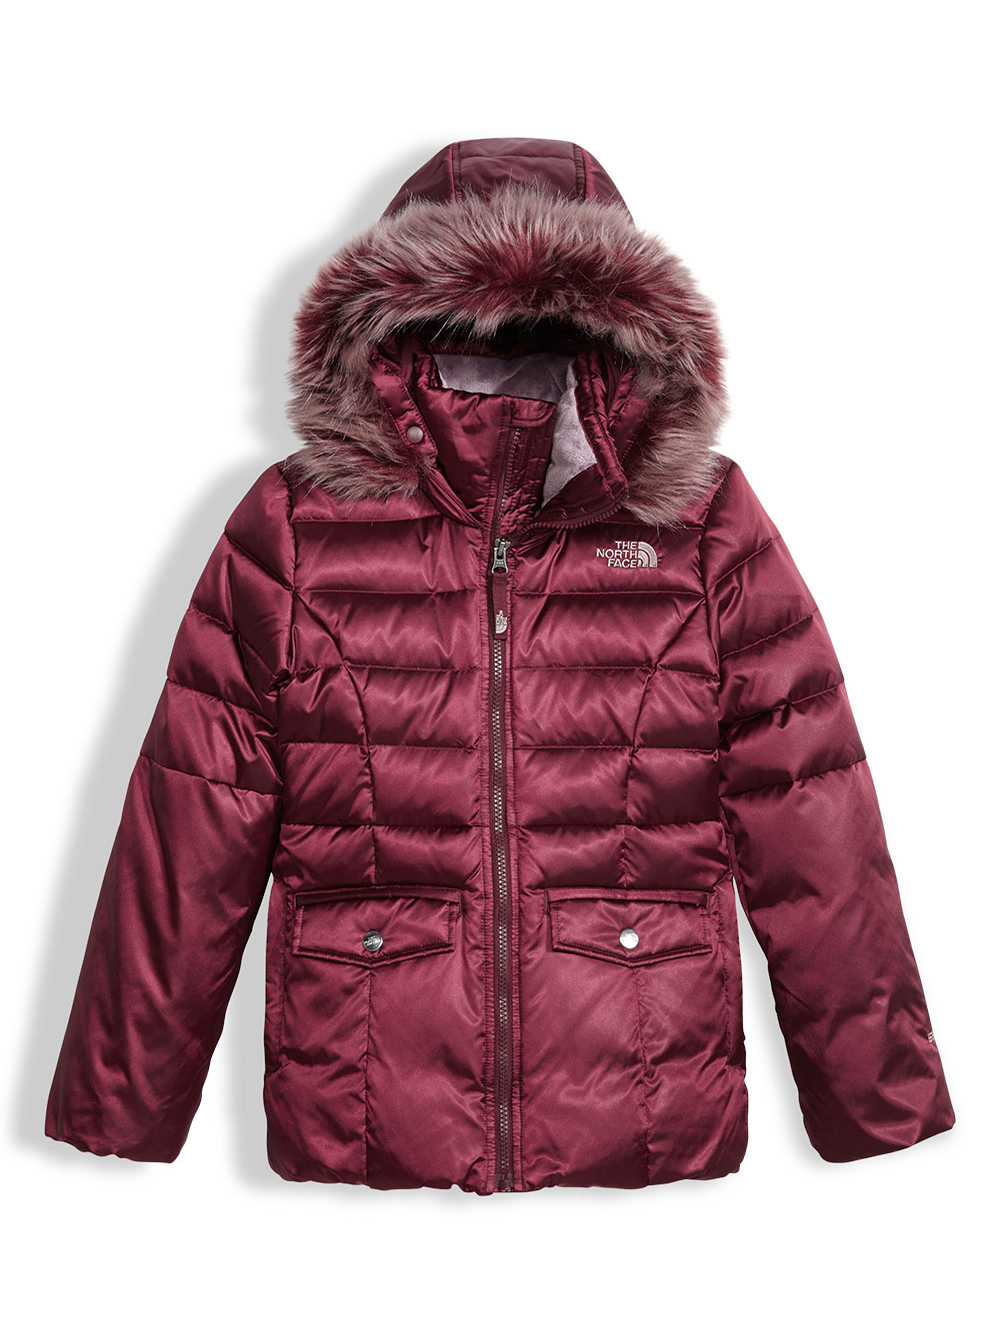 c02b8cd81 The North Face Little Girls' Gotham 2.0 Down Jacket (Sizes 4 – 6X)